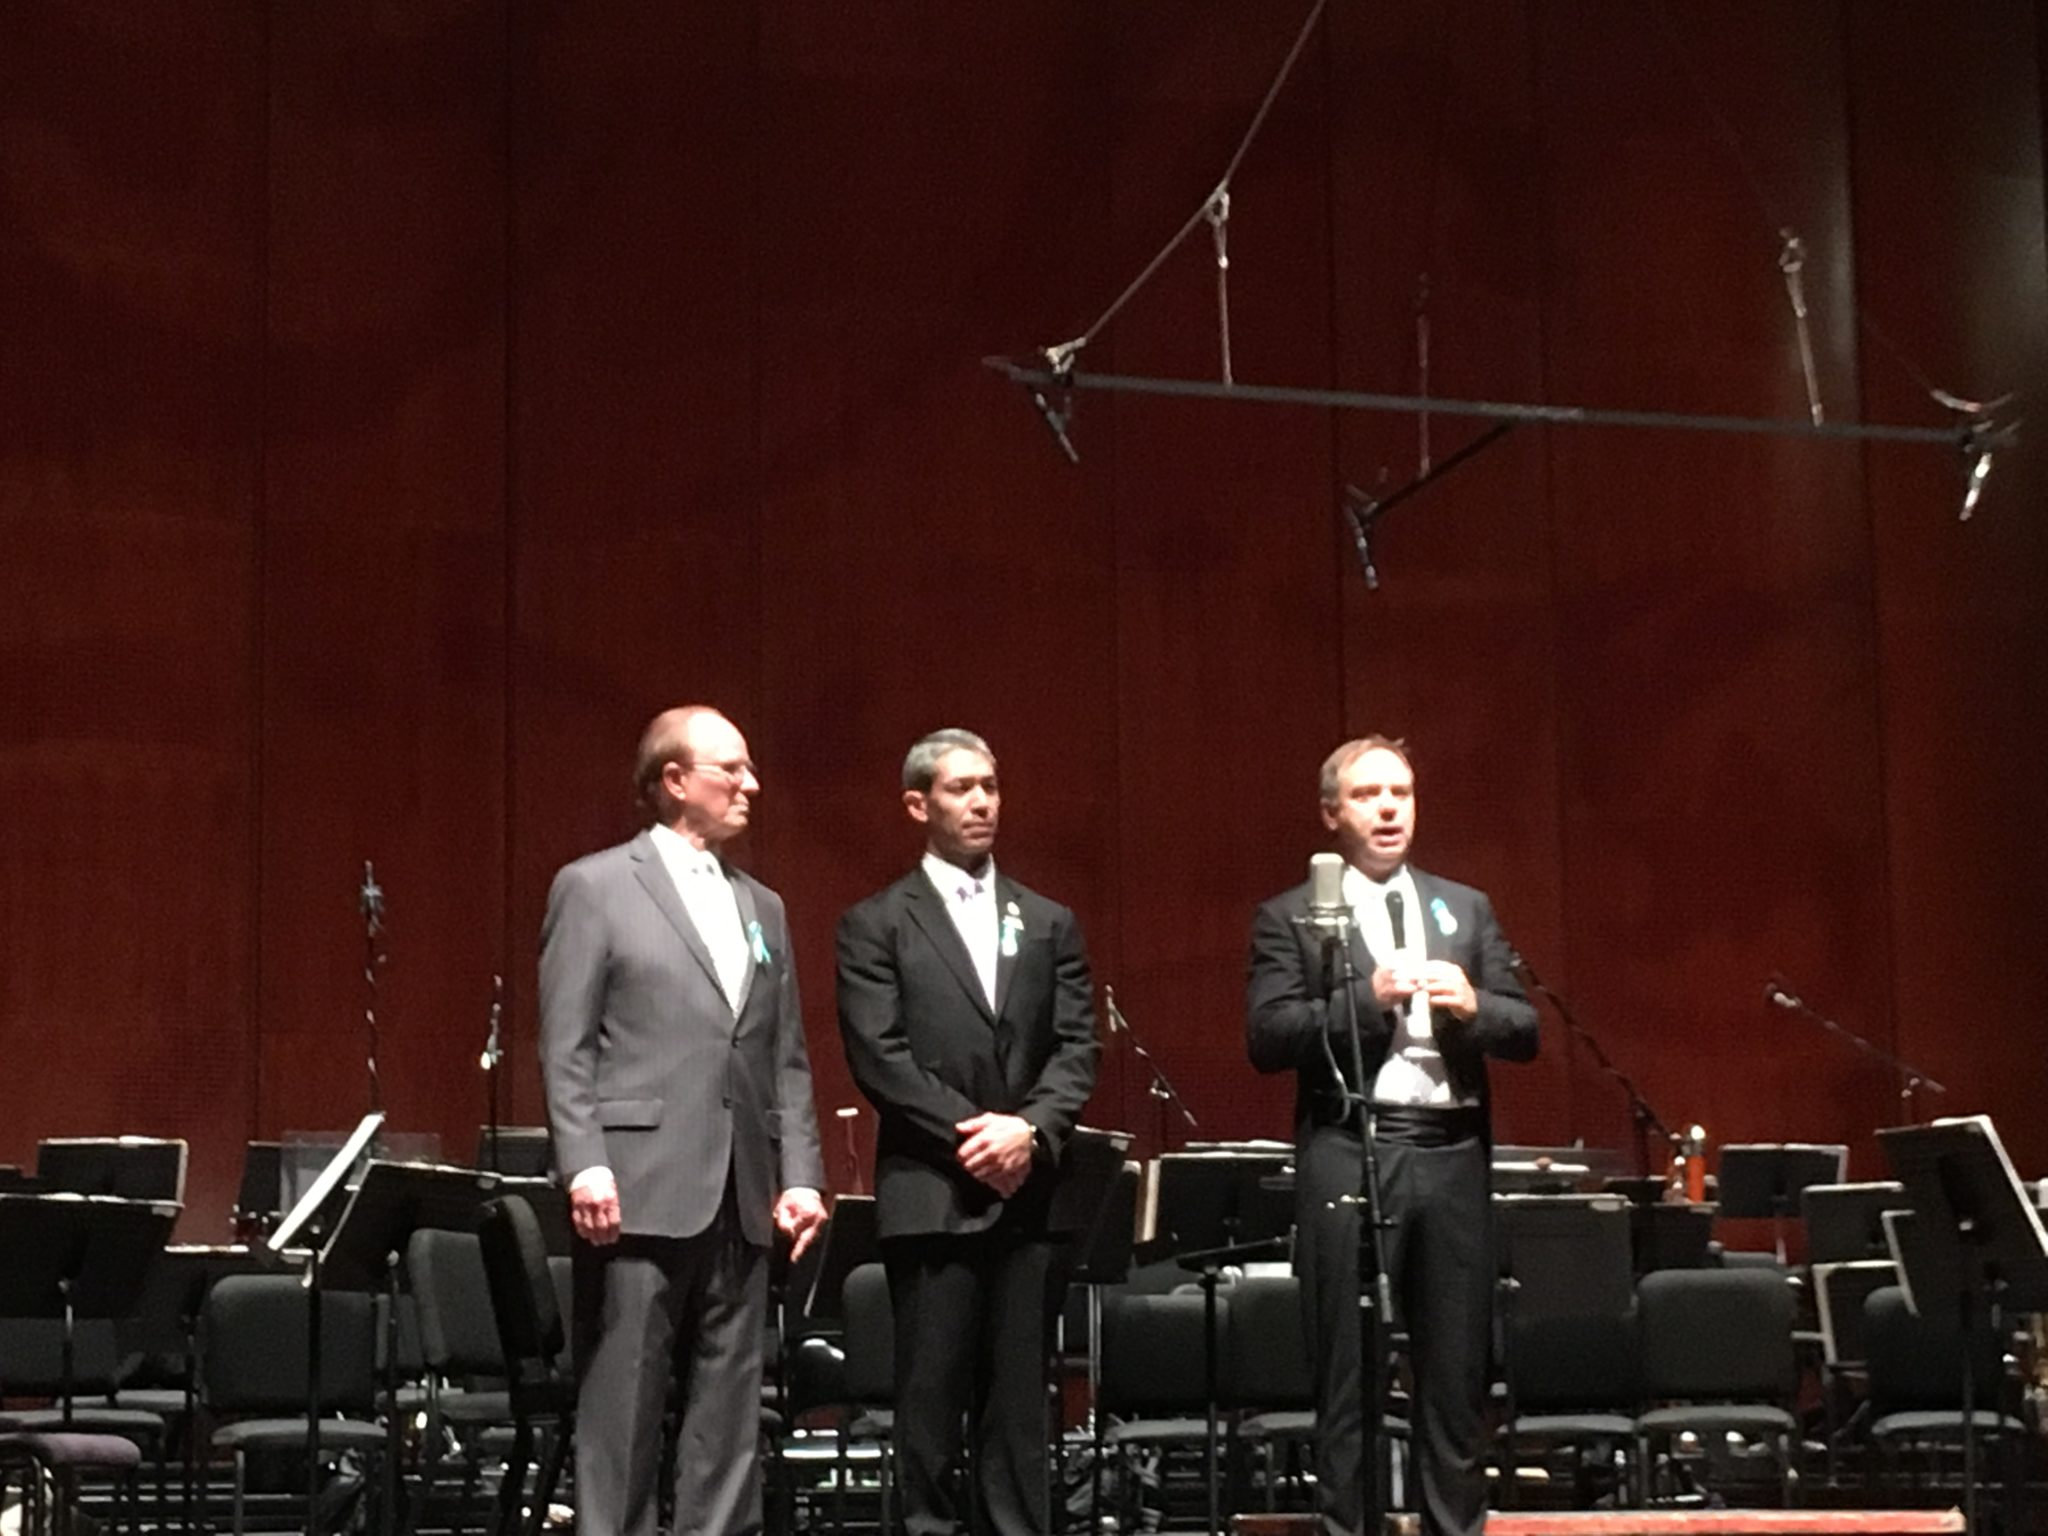 (From left) Bexar County Judge Nelson Wolff, Mayor Ron Nirenberg, and Sebastian Lang-Lessing, the San Antonio Symphony's music director, speak on stage at the second of two Tricentennial concerts.